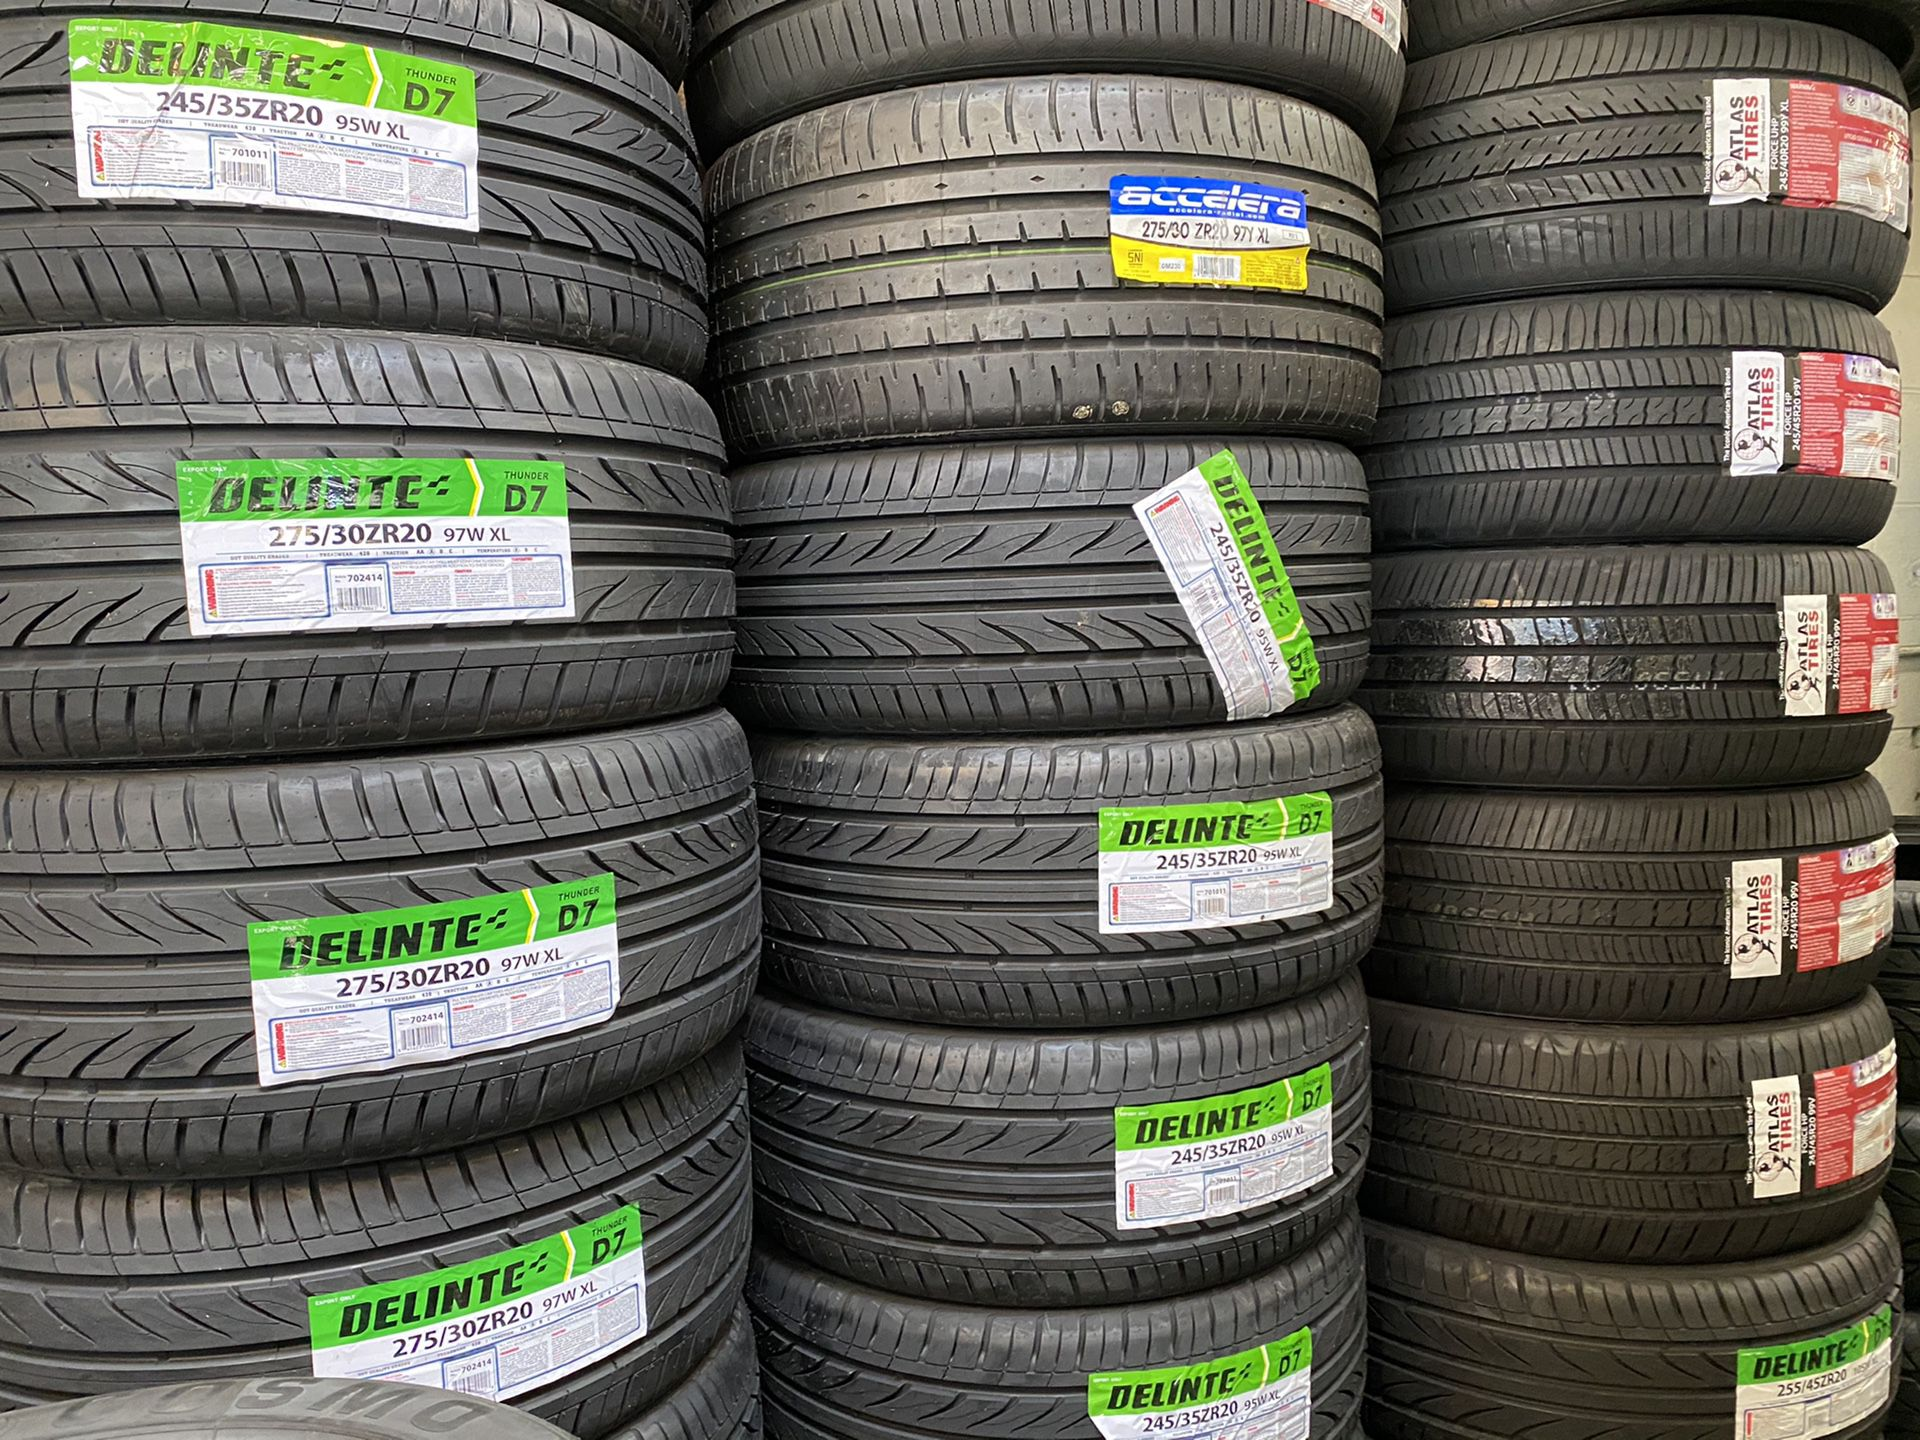 Brand new tire sets on sale‼️ Best prices in town ✅